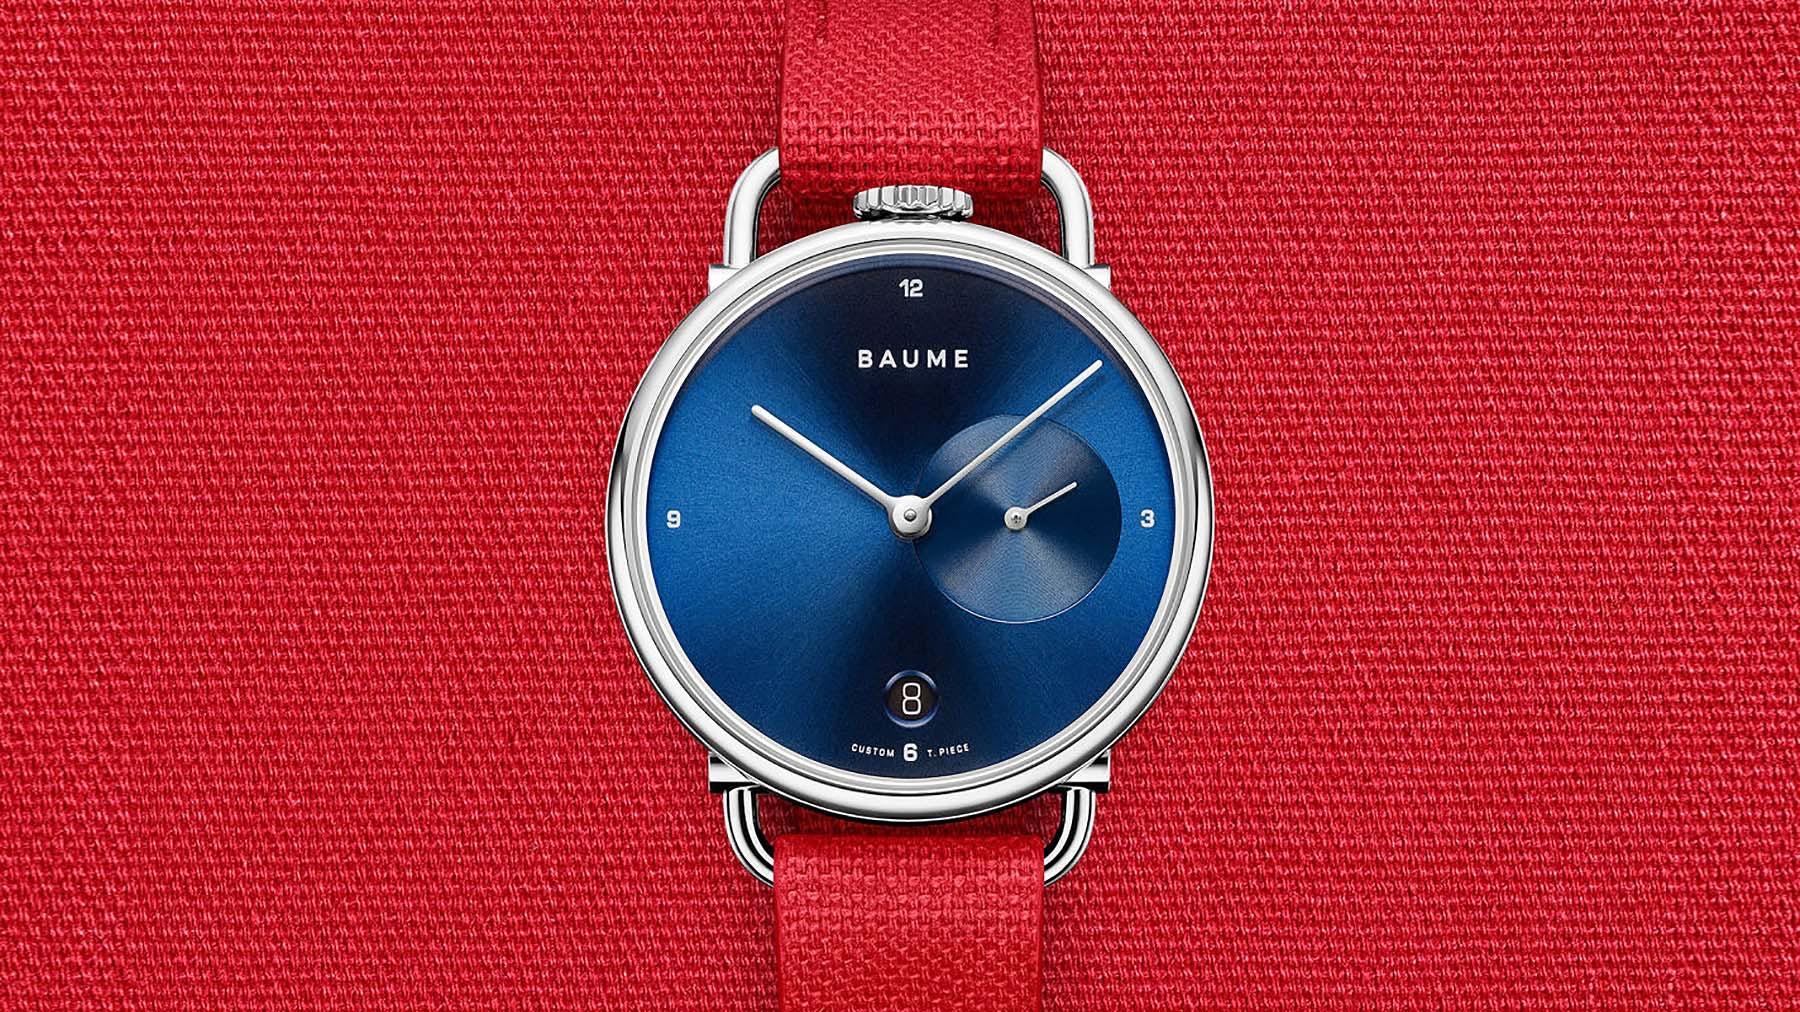 Richemont watch brand Baume | Source: Courtesy